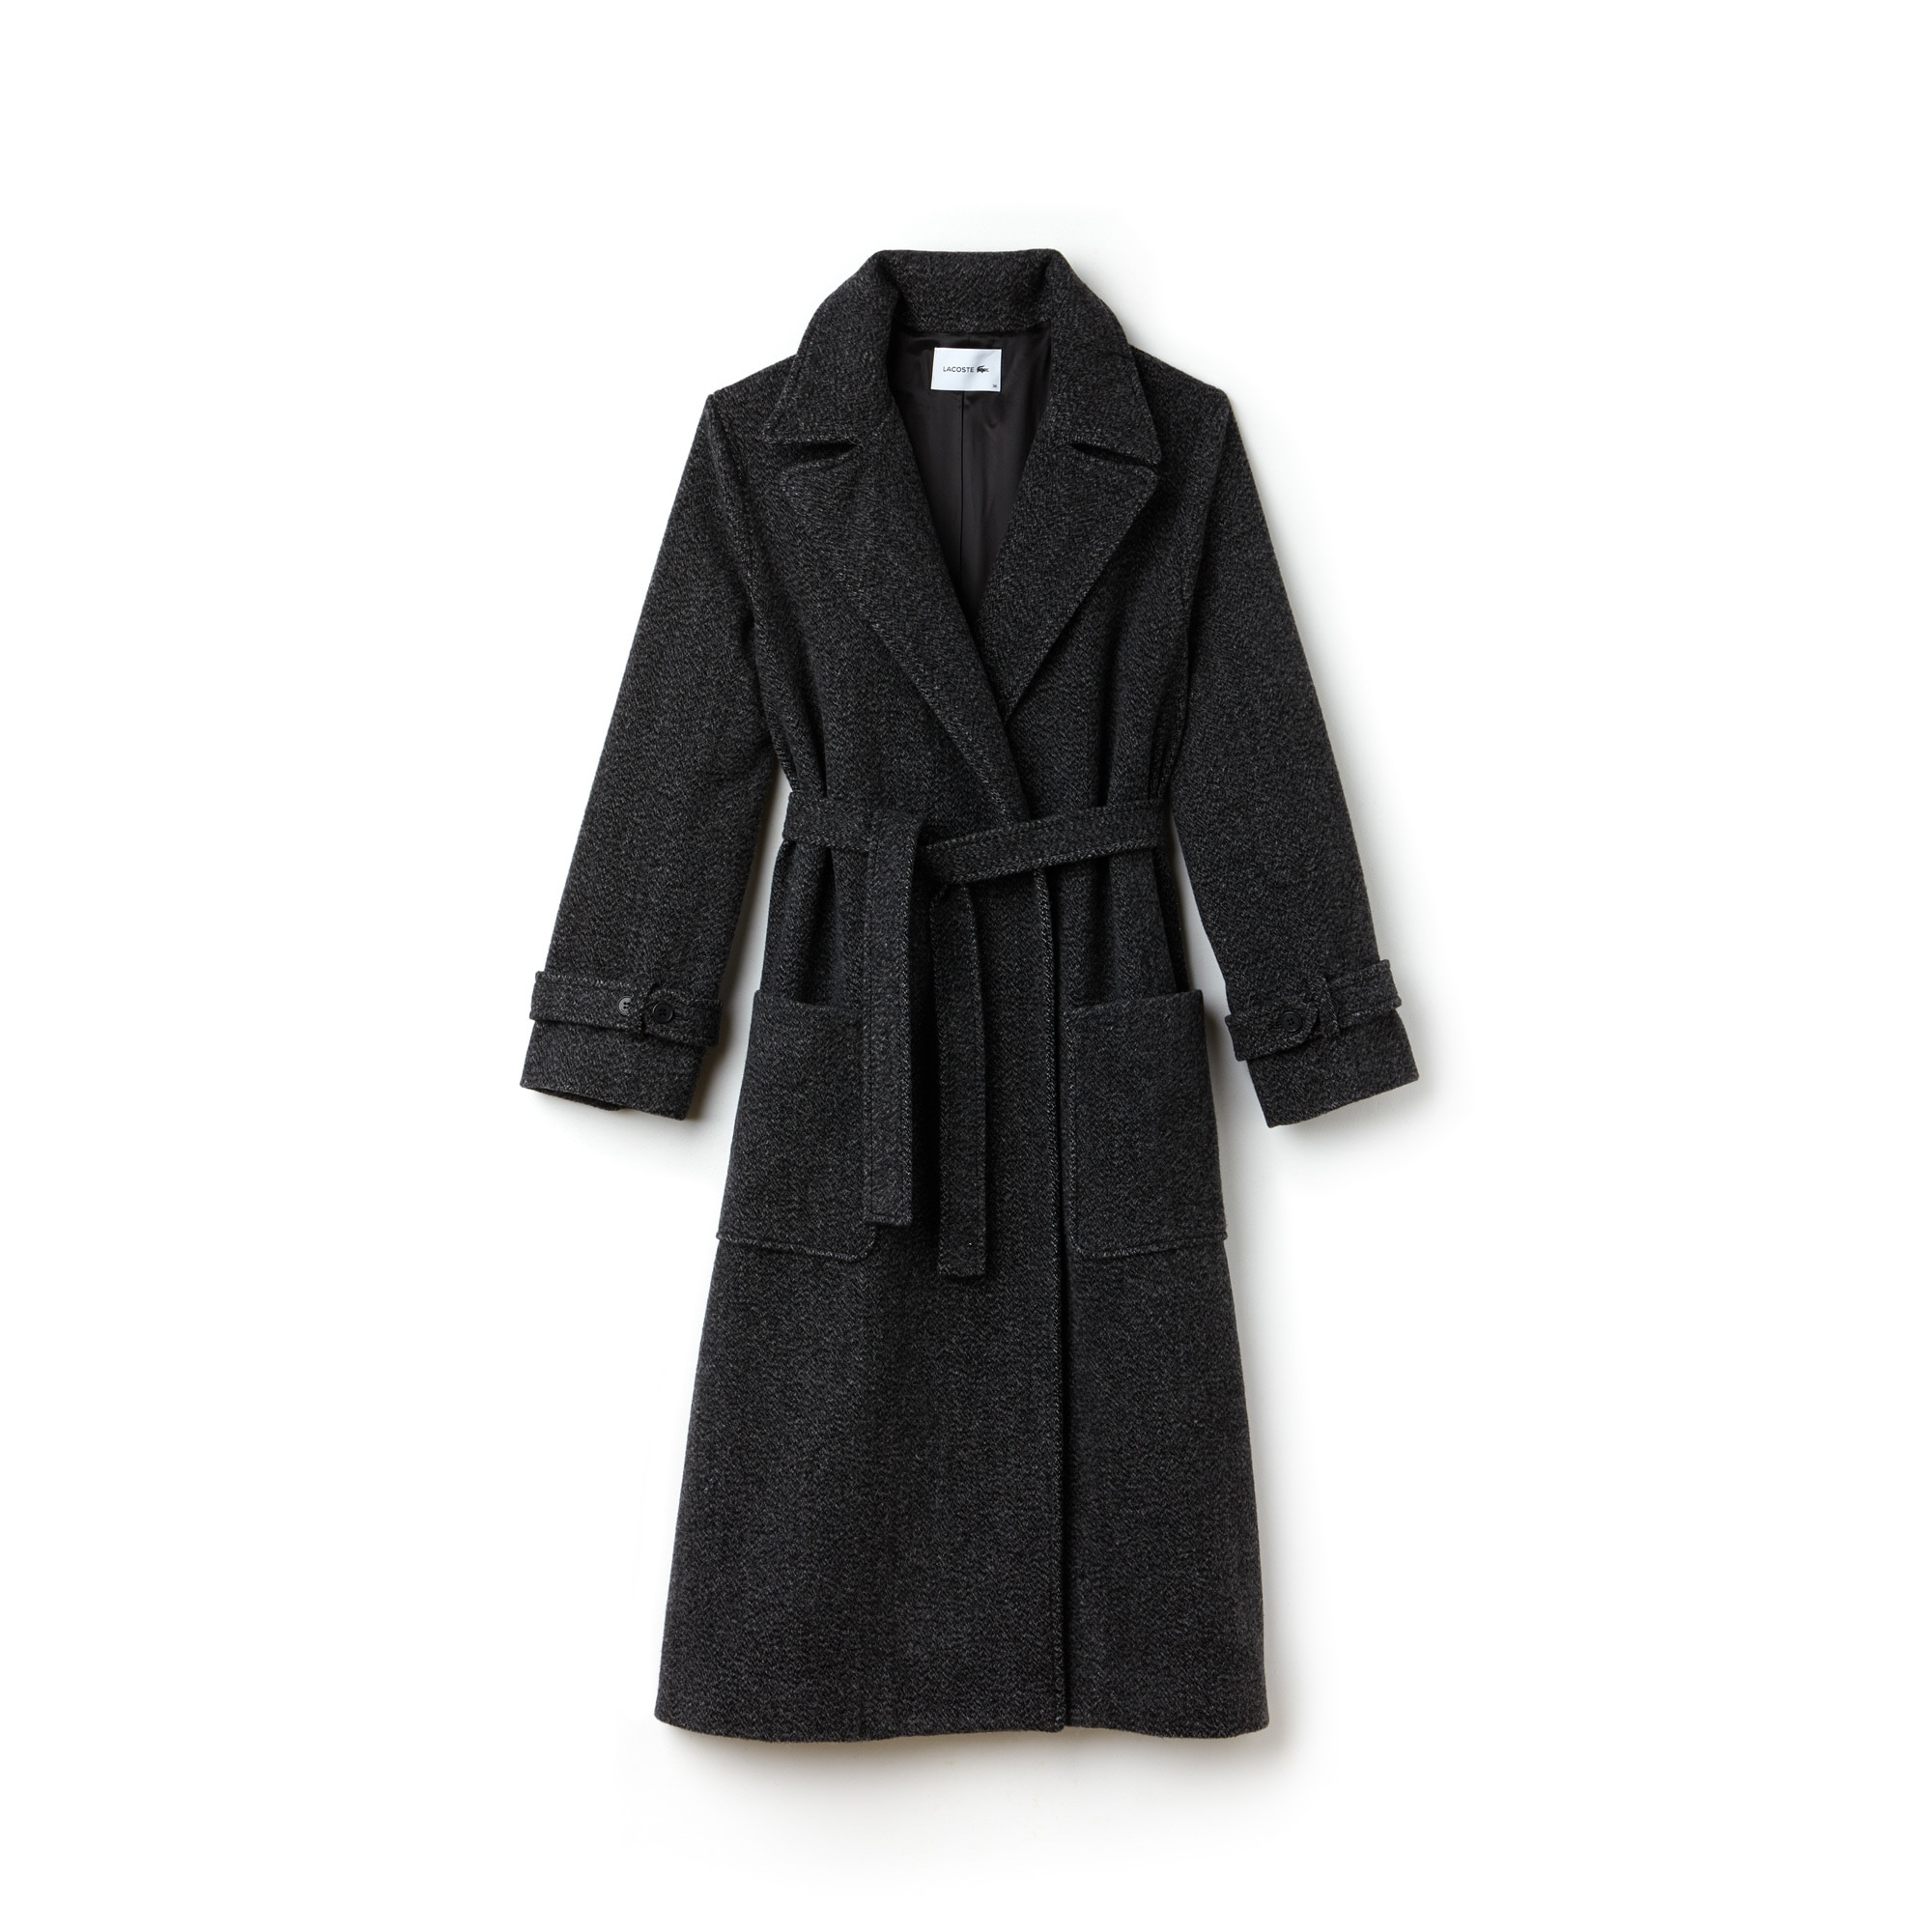 Women's Long Belted Tweed Coat